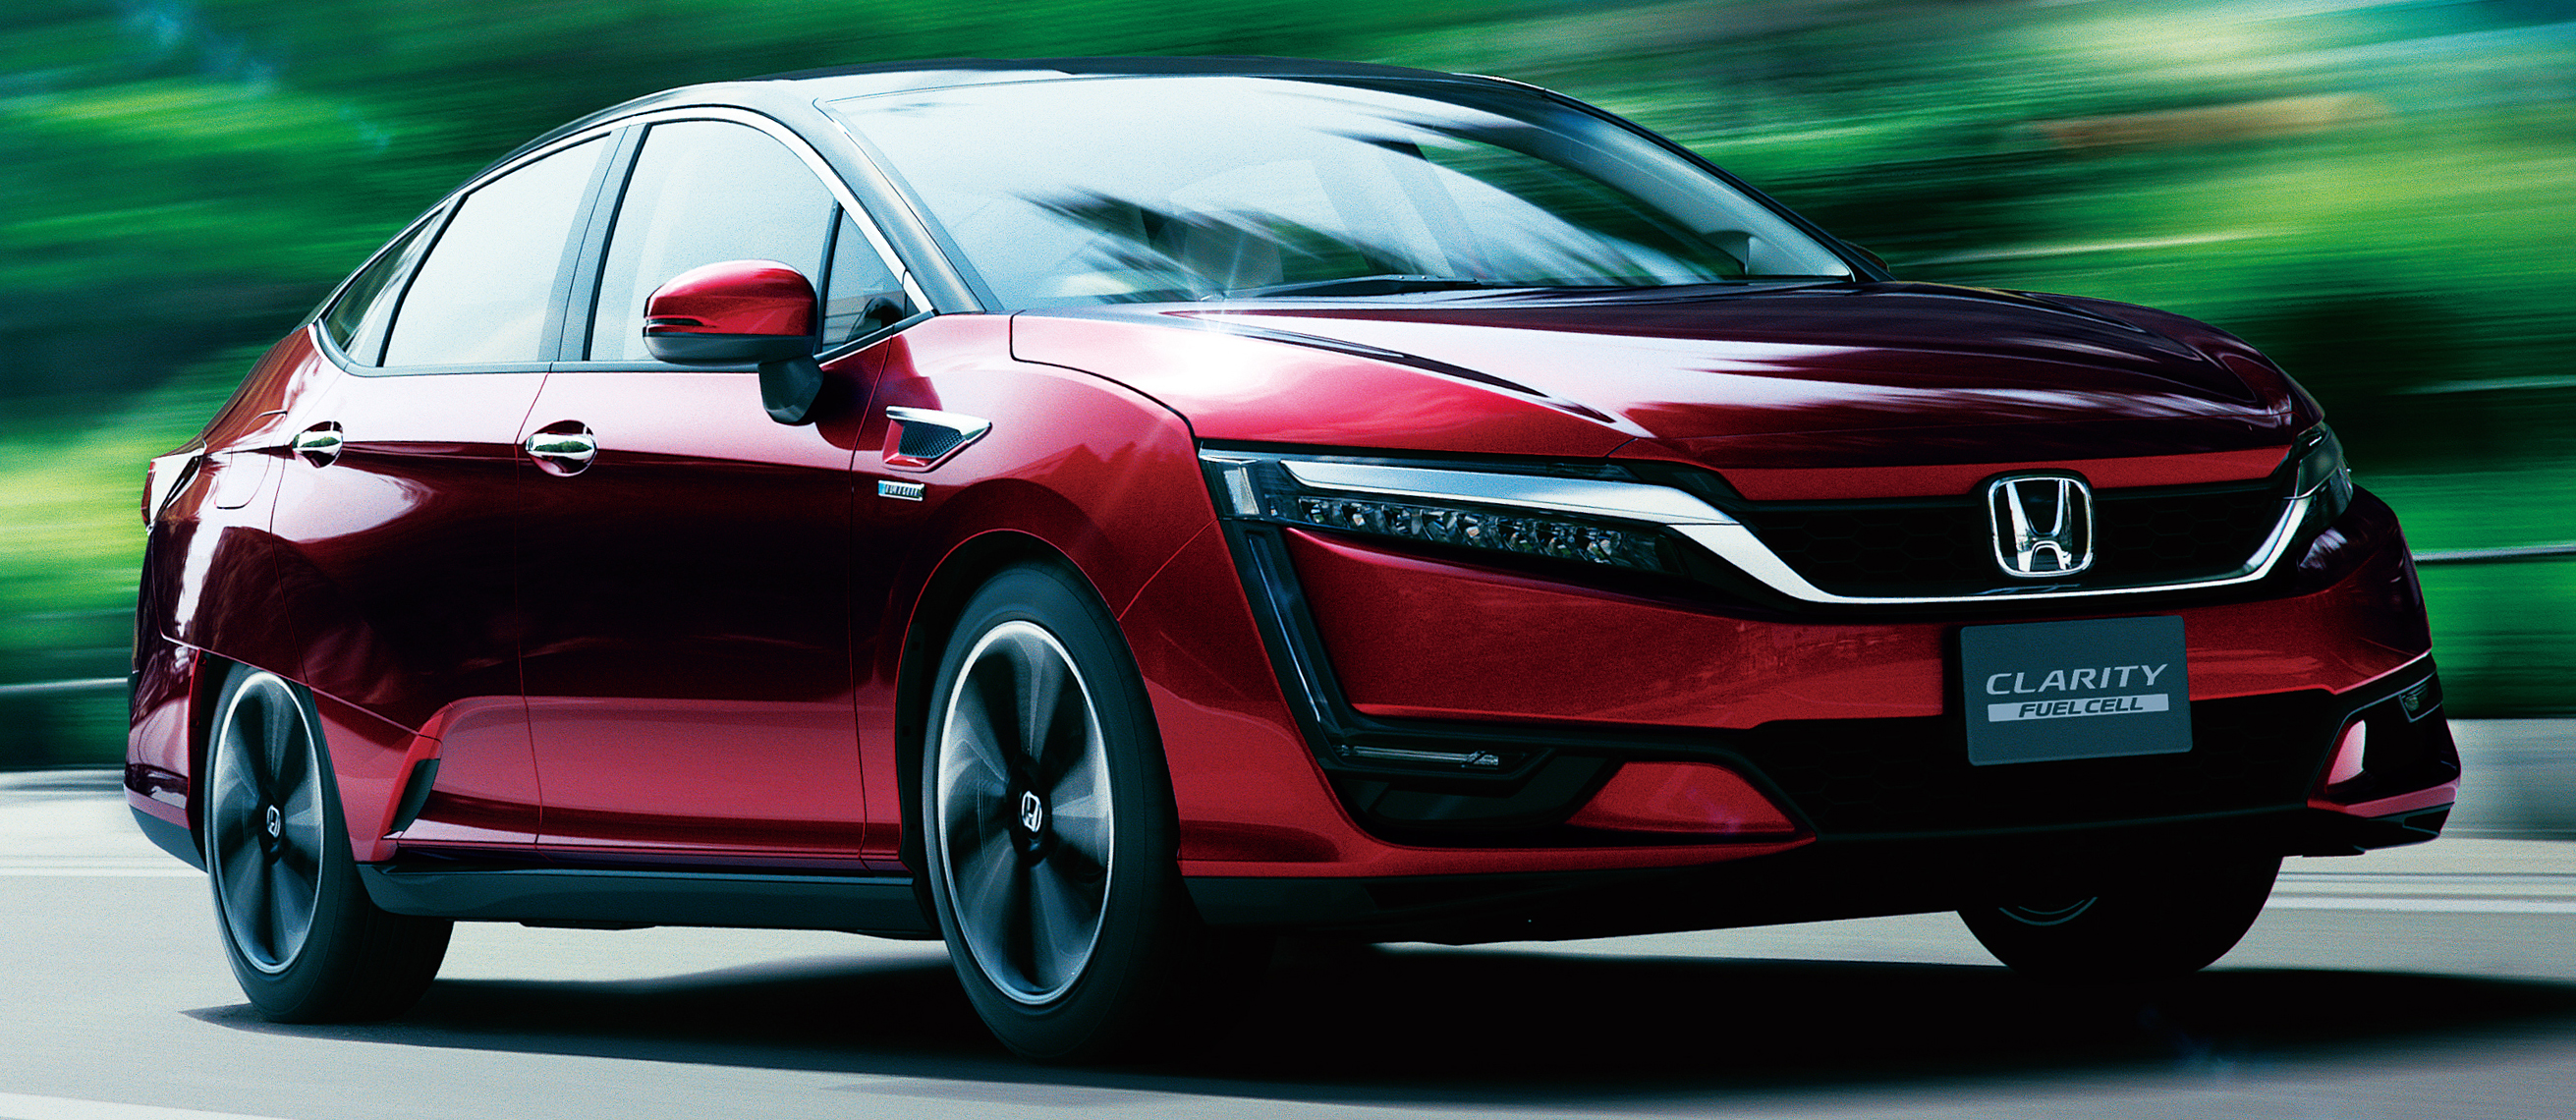 Tokyo 2015: Honda Clarity Fuel Cell makes its debut Image #399041